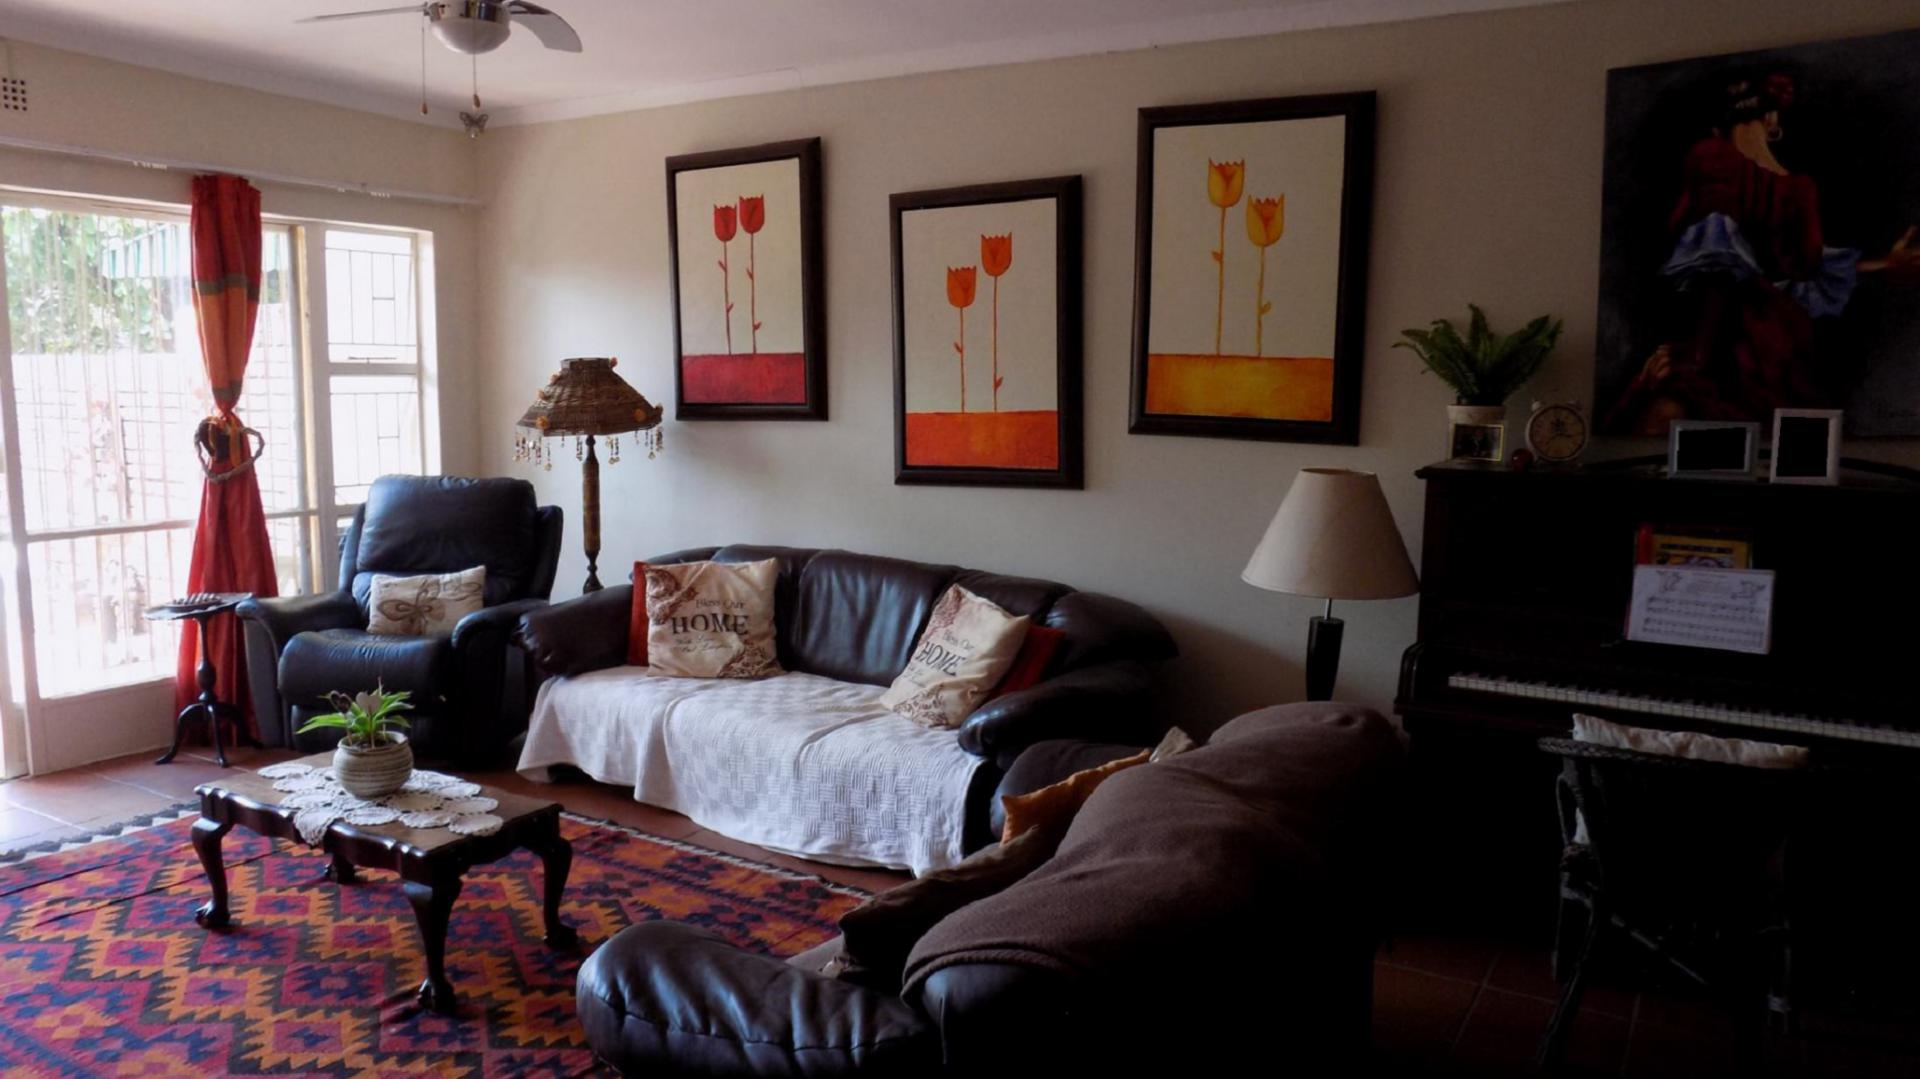 3 bedroom house for sale for sale in protea park north for North west house